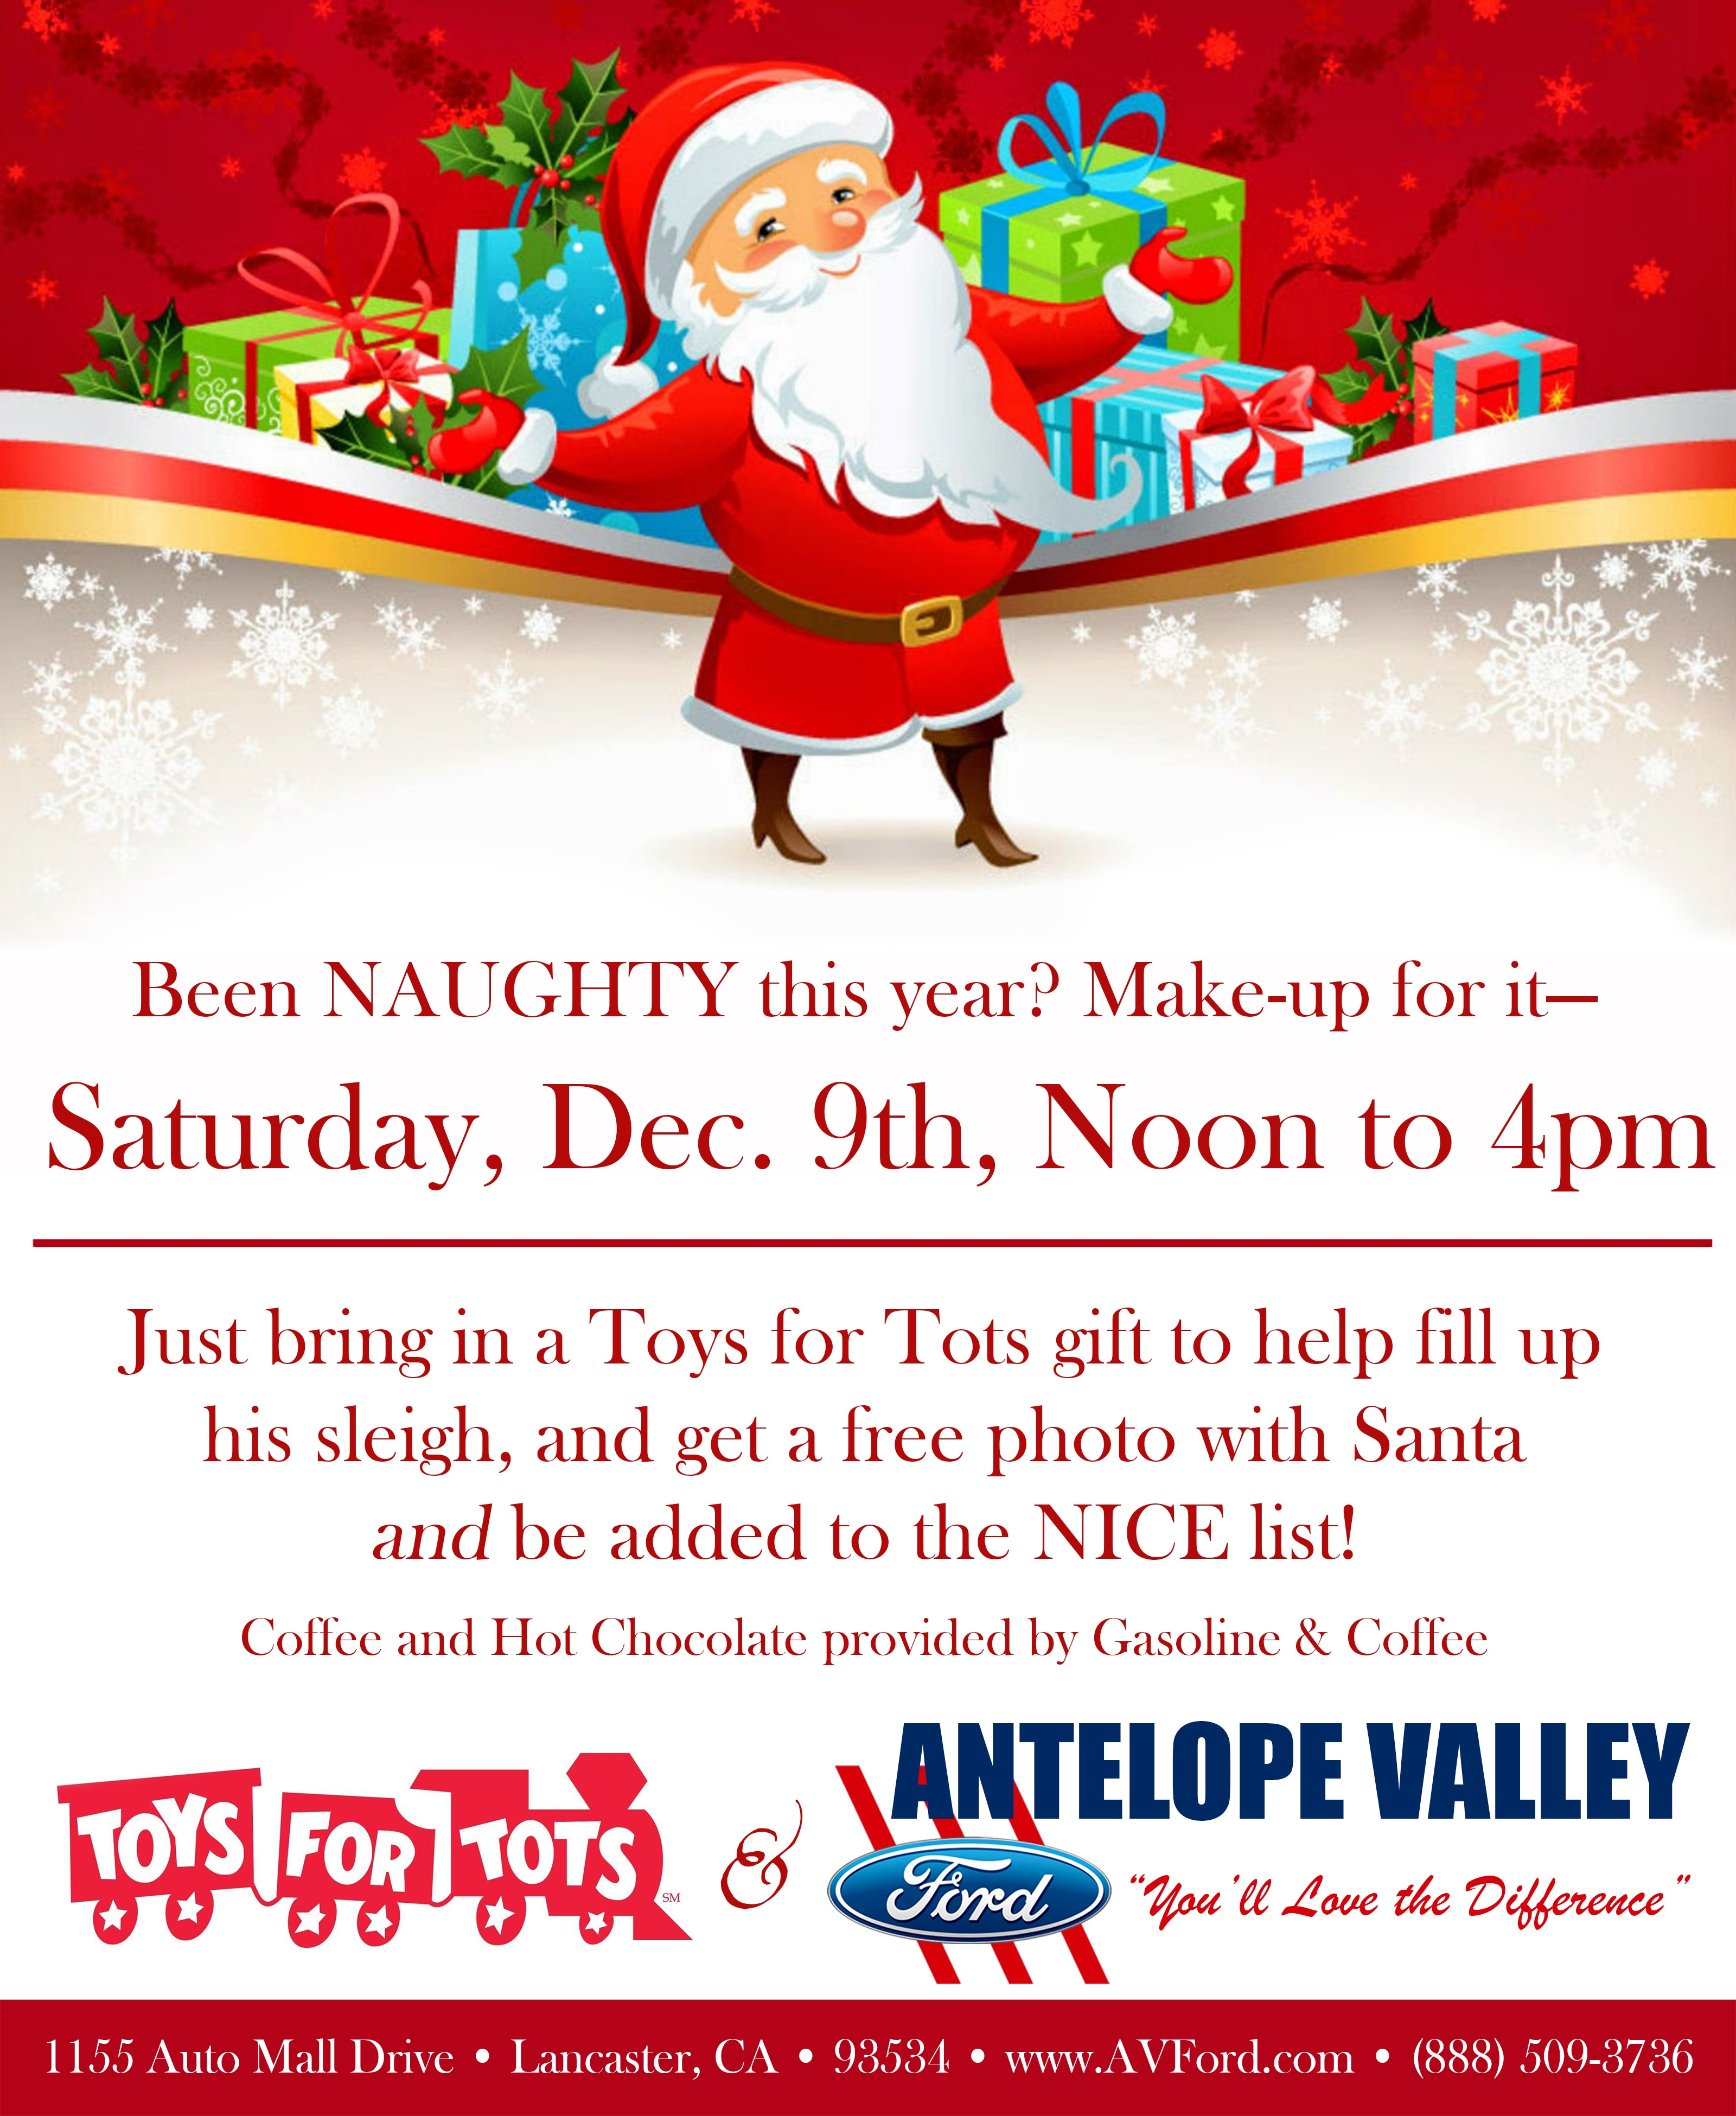 Bring a Toys For Tots donation and get a free photo with Santa at AV Ford